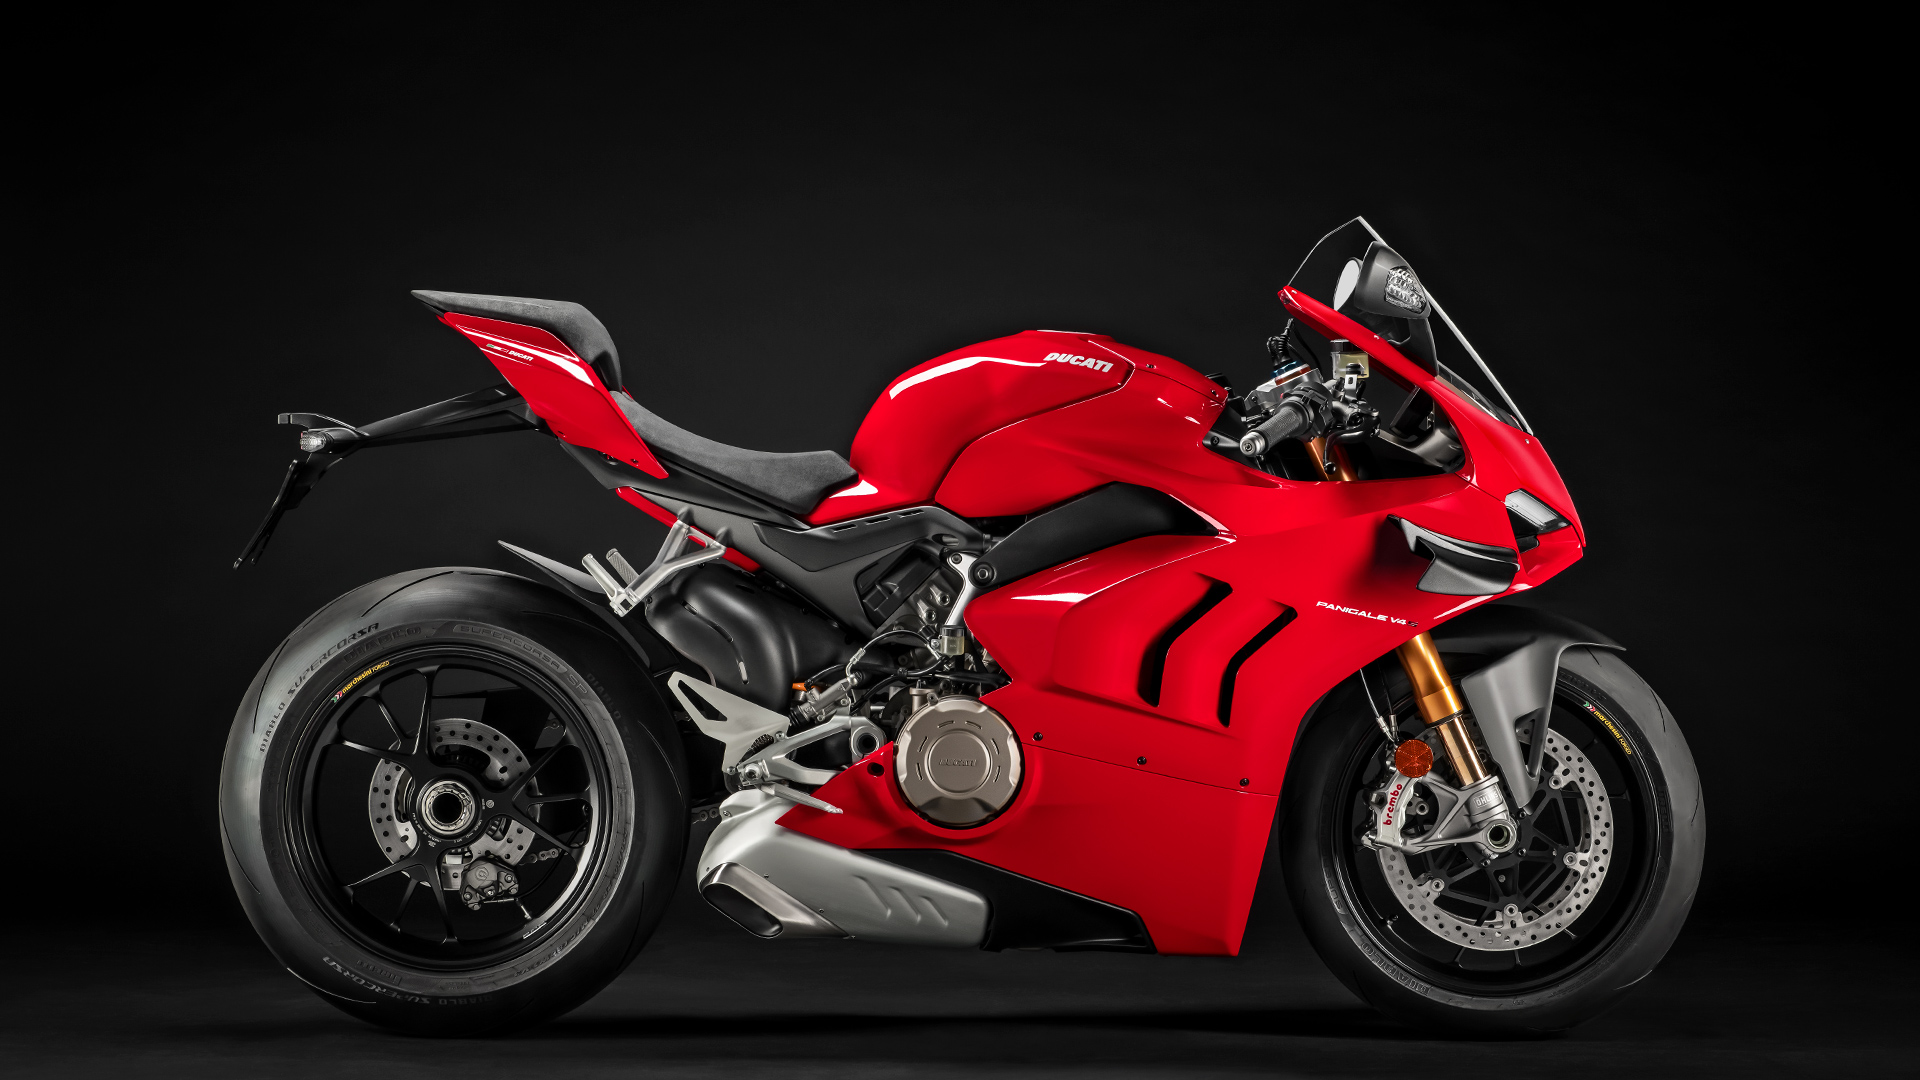 Panigale-V4-S-MY20-Red-02-Gallery-1920×1080 (1)